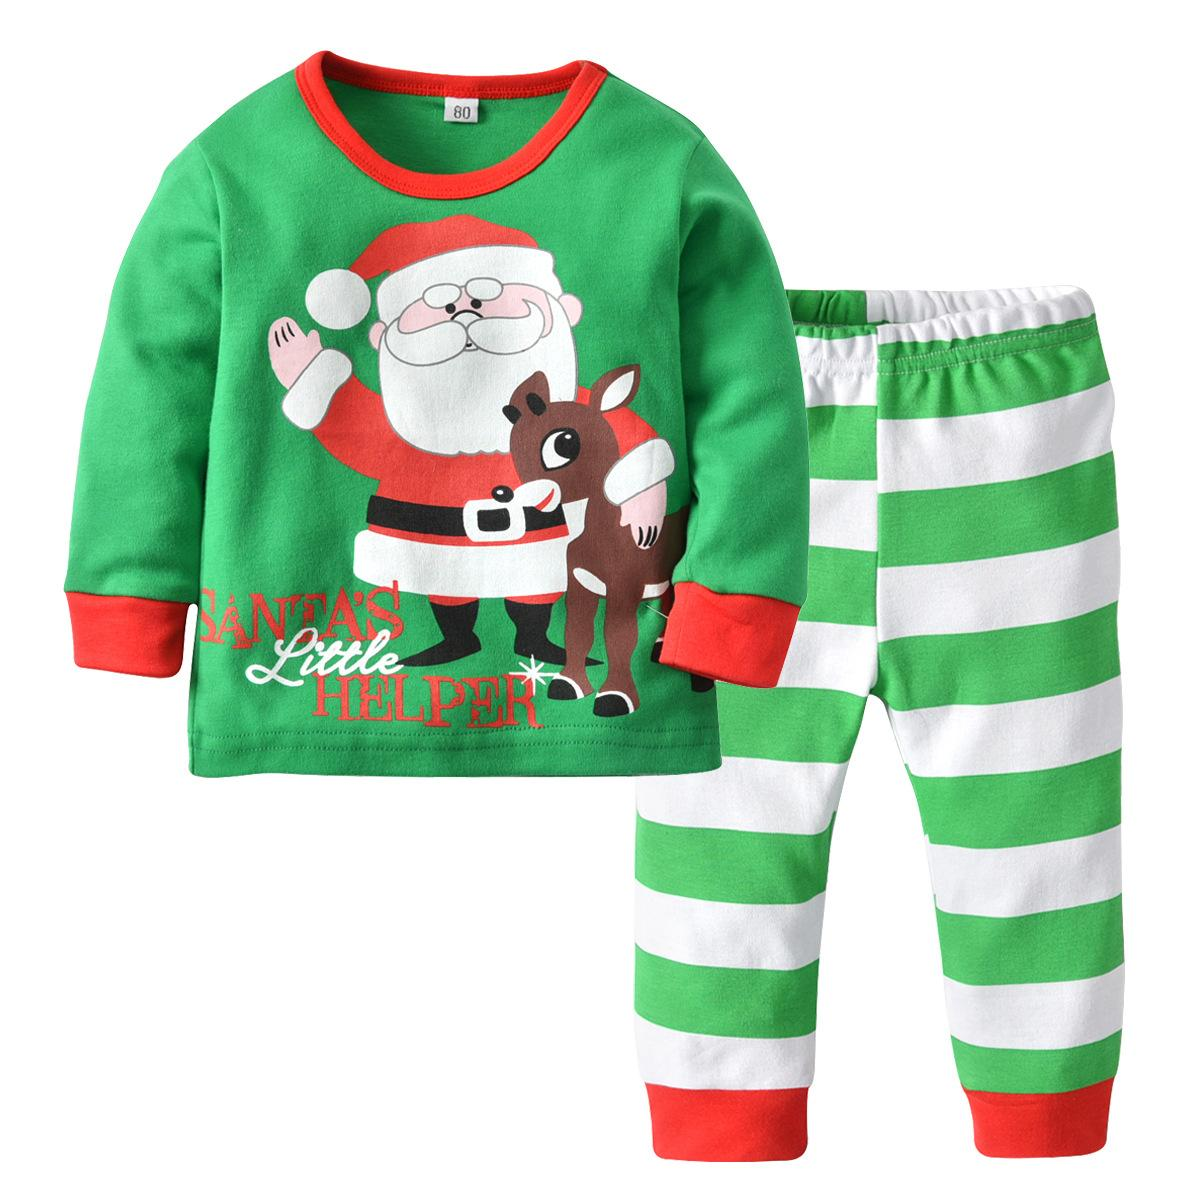 2c0a2a819b Printed Christmas Santa Claus Children Boys Girls Cotton Pajamas Set Green  Striped Long Sleeve Toddler Baby Kids Tops +Pants Clothing Set Children In  ...